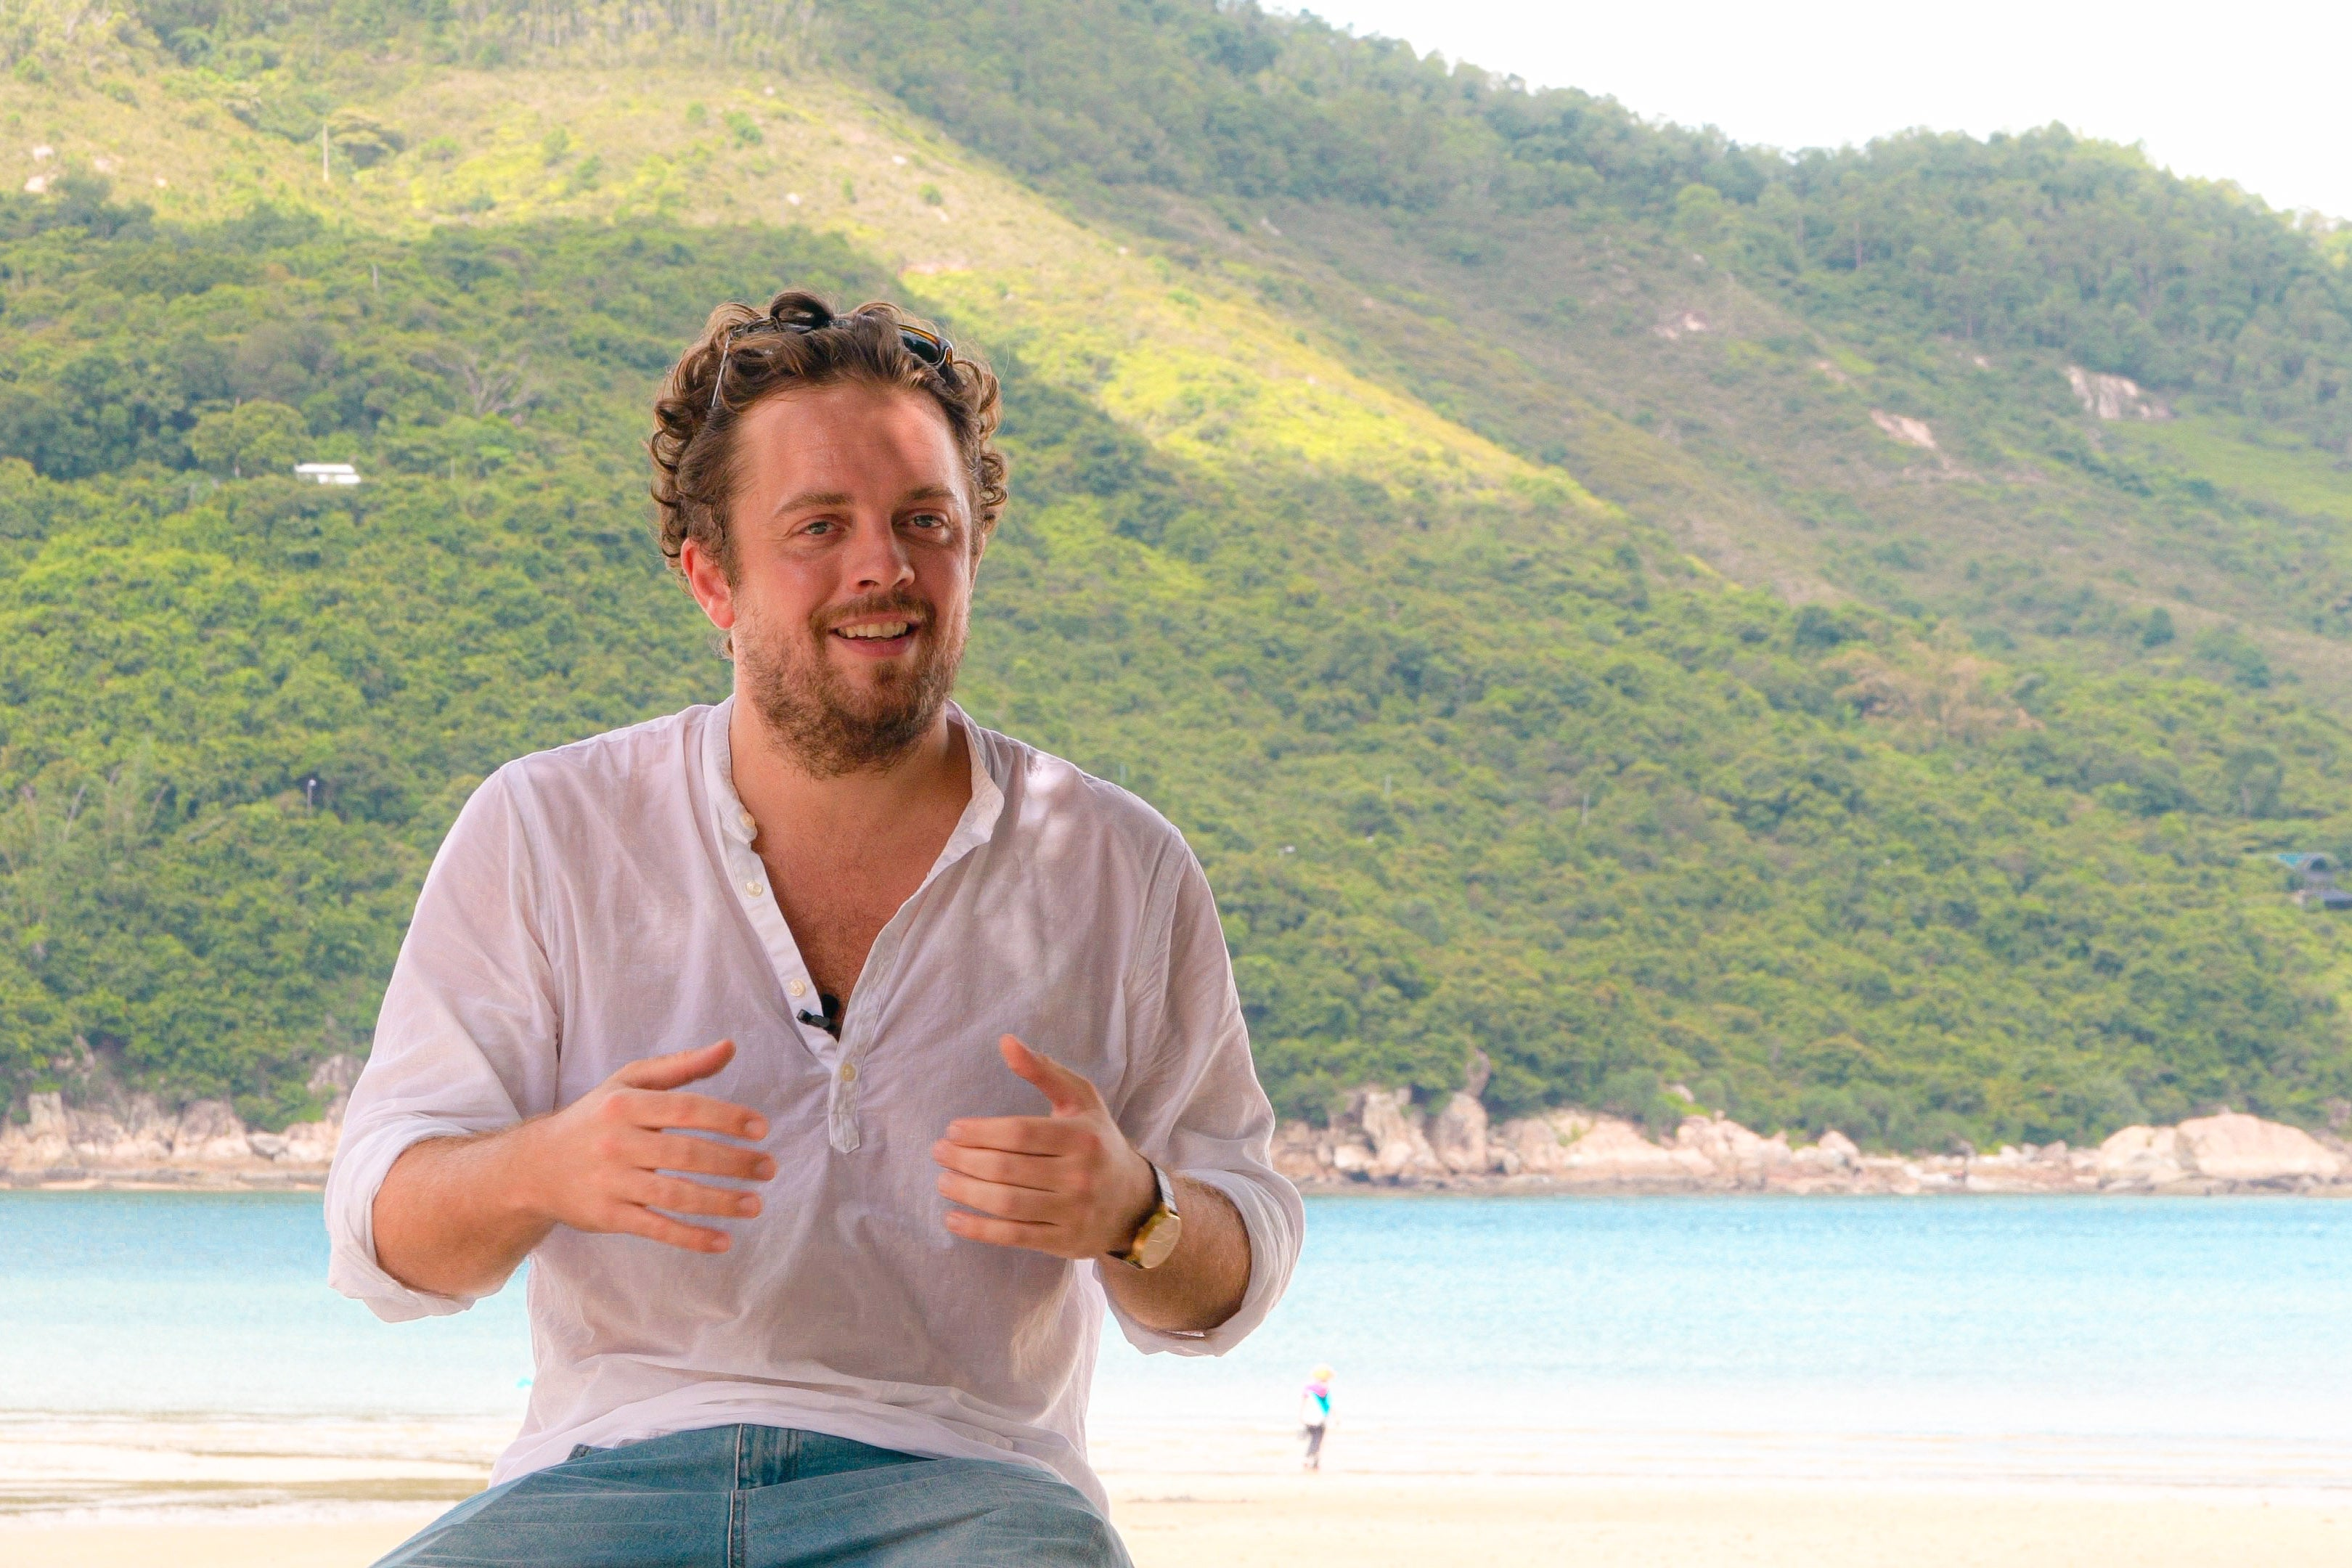 Meet David: Bon vivant, world-traveller and Champagne entrepreneur